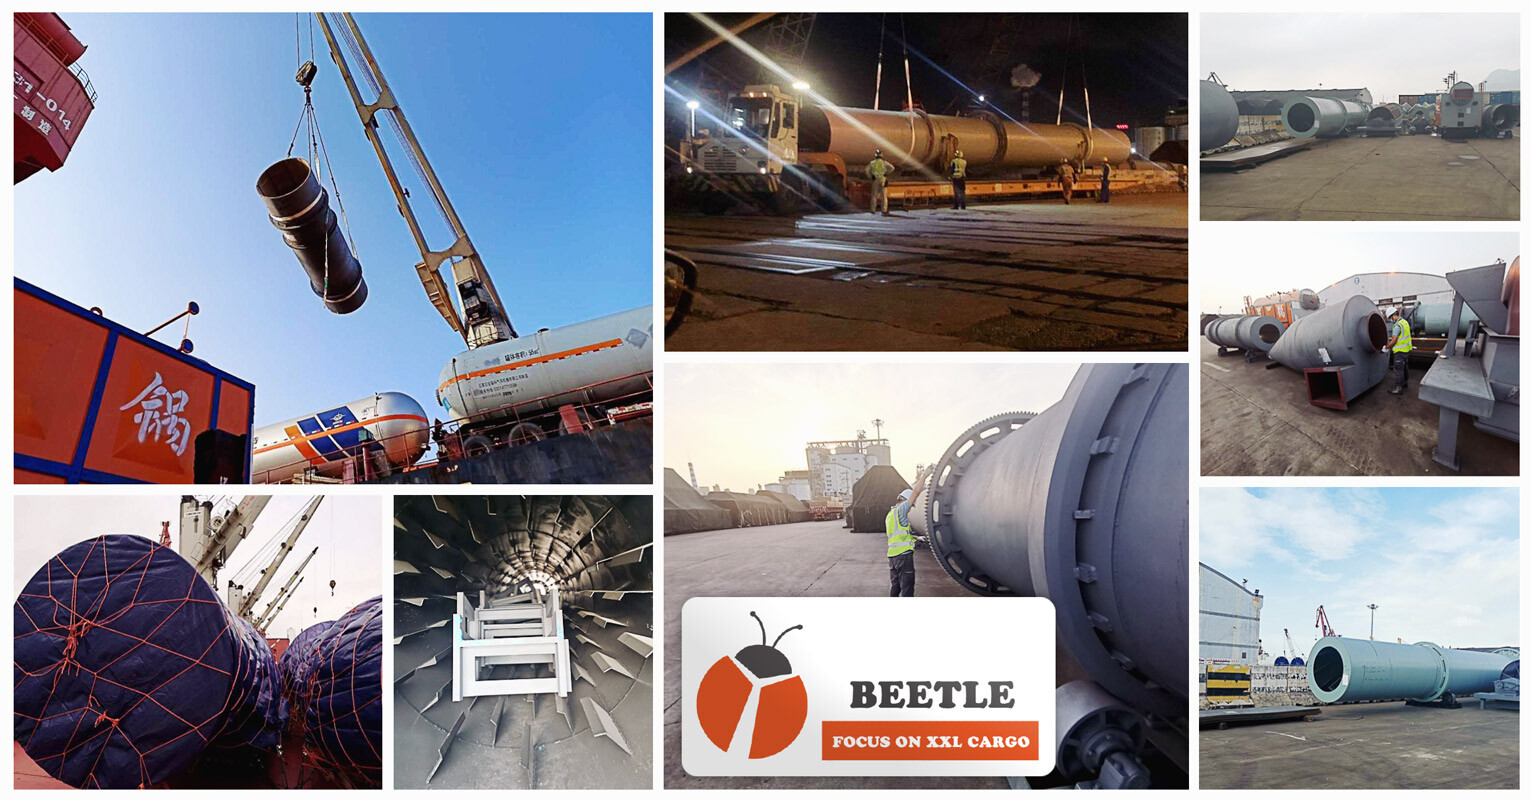 Shanghai Beetle Handled a Breakbulk Shipment from Lianyungang, China to Lagos, Nigeria